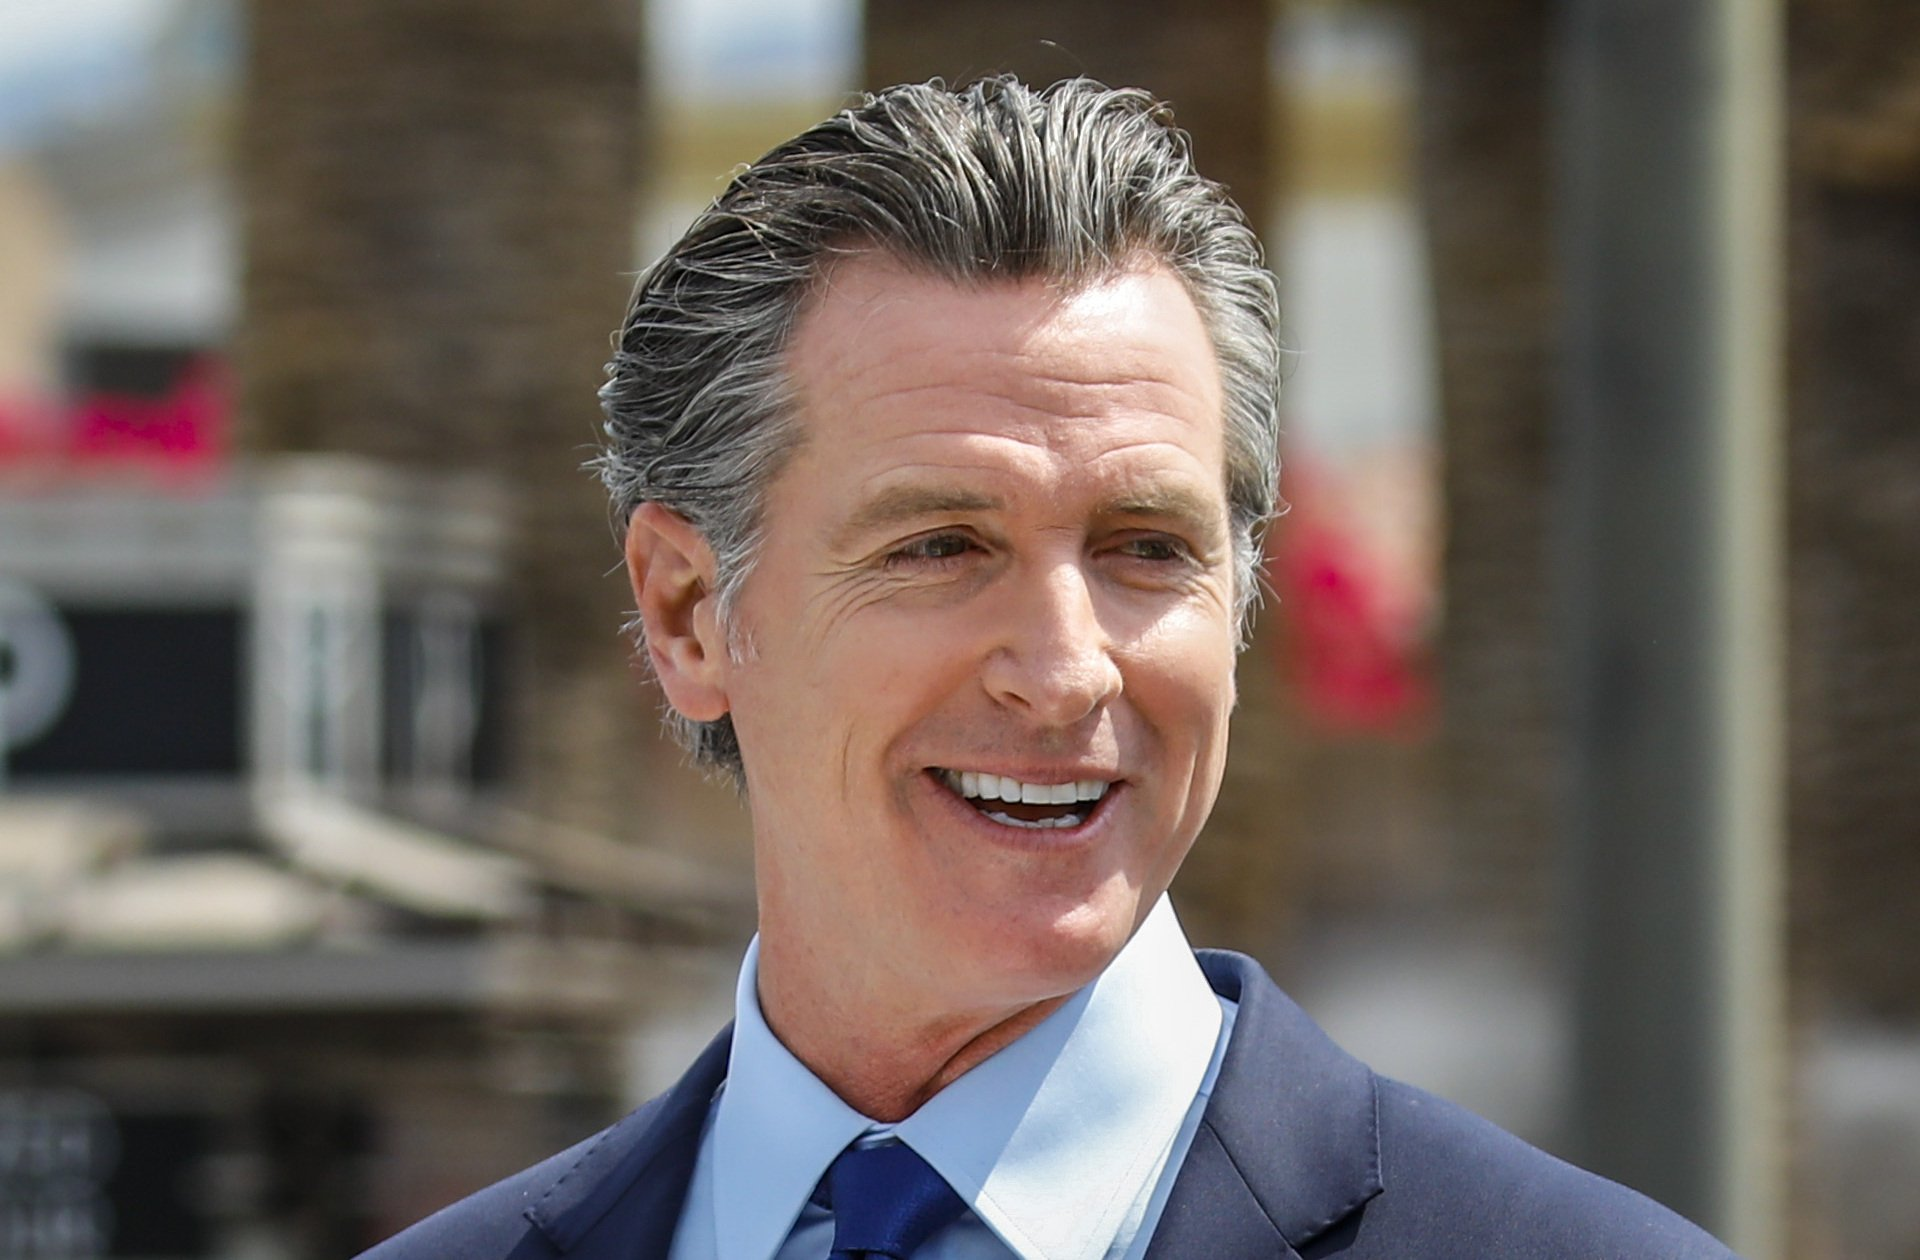 California to Issue More Stimulus Checks as Newsom Signs $100-Billion Recovery Plan